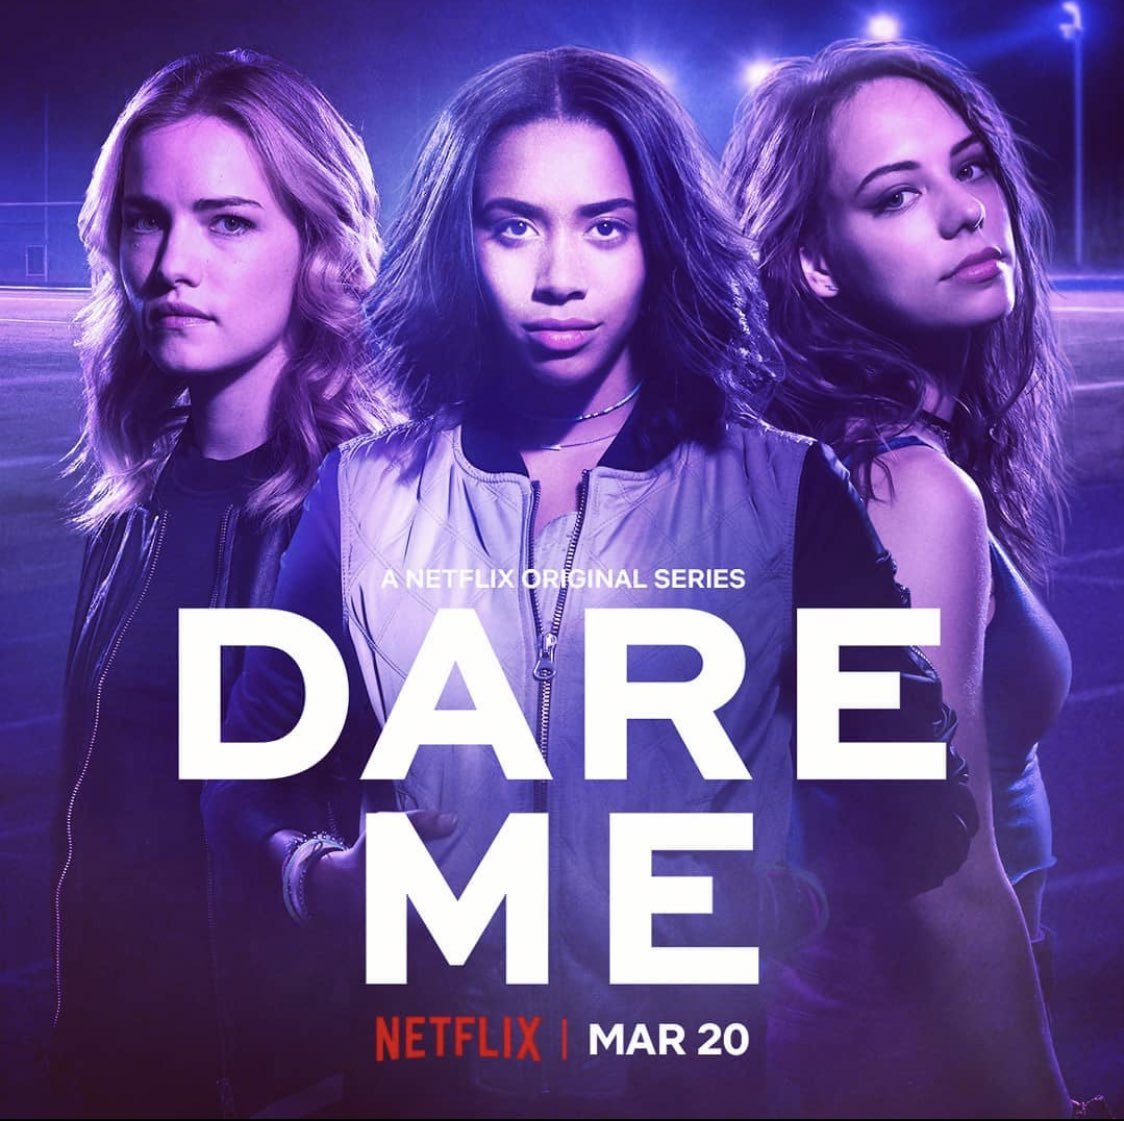 Dare Me S01 in Hindi Dual Audio 720p WEBRip Complete Episode free ...